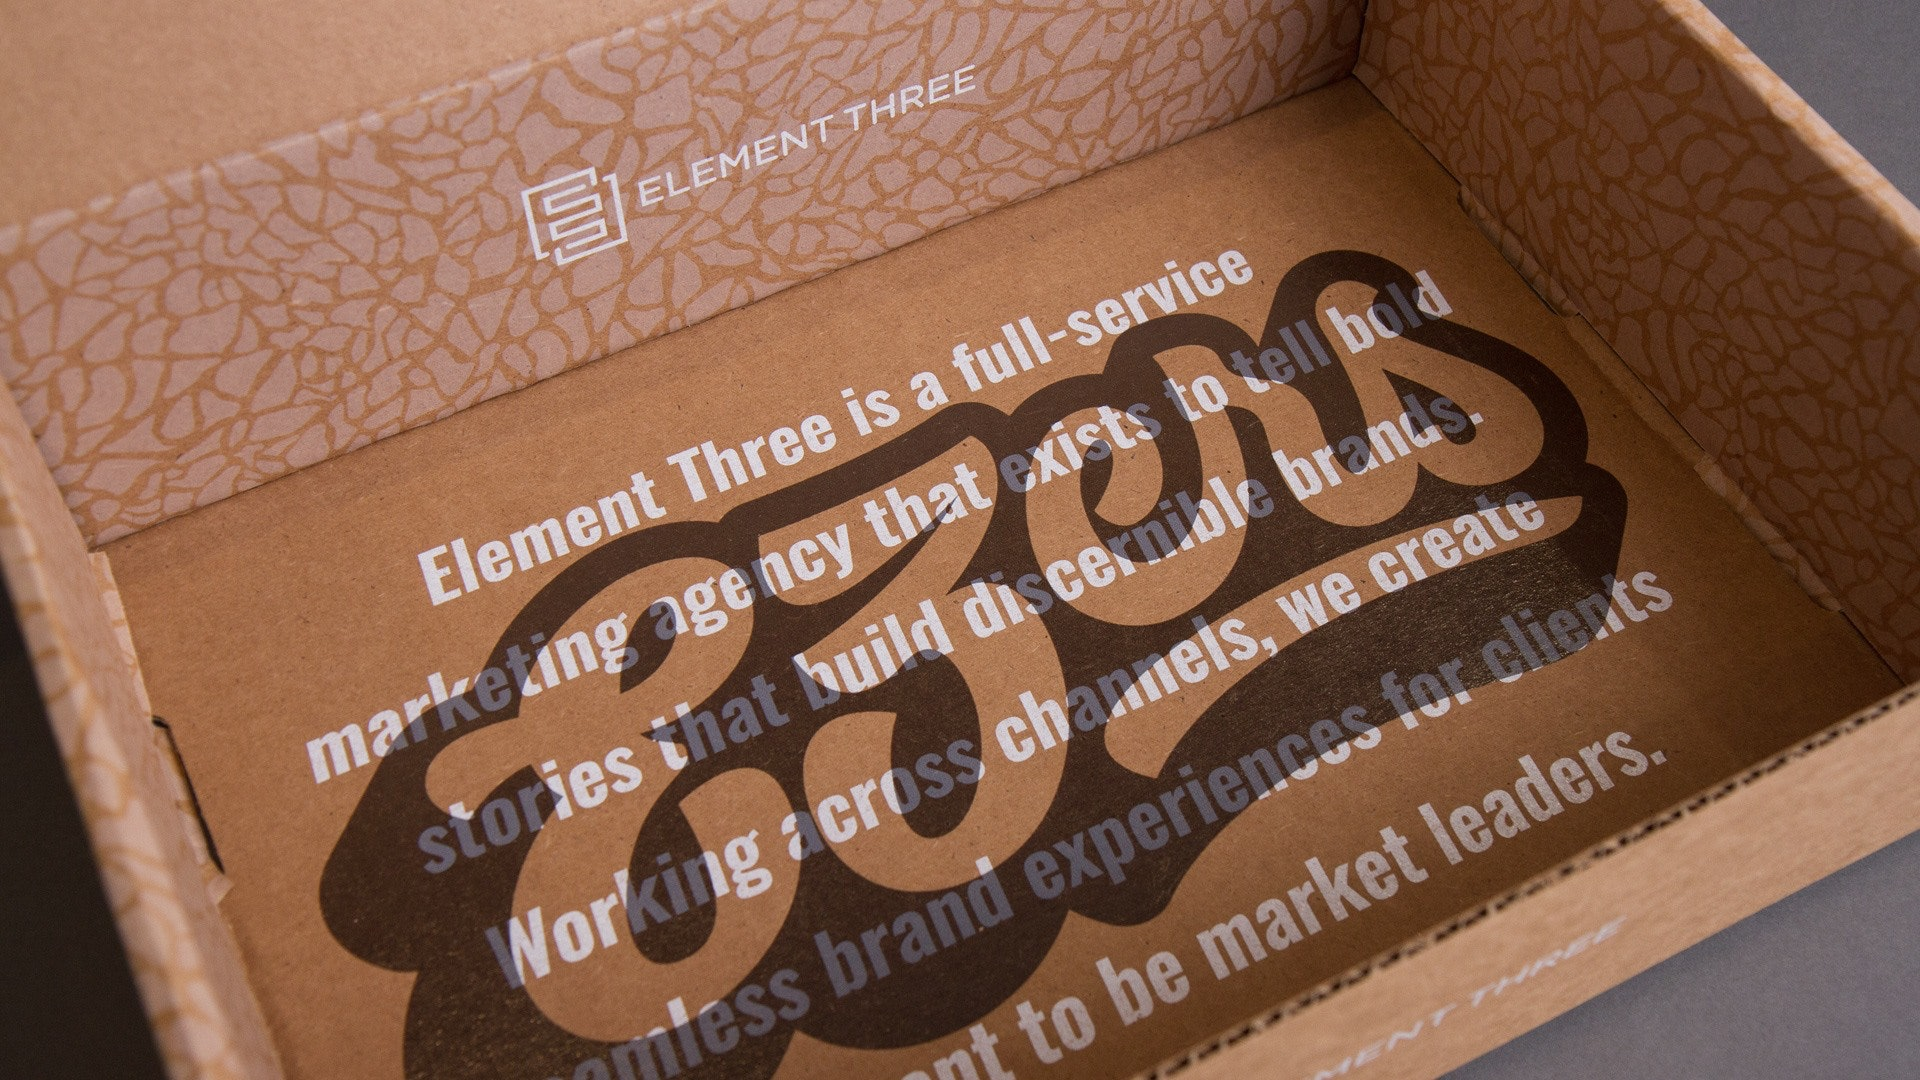 Element Three Onboarding Kit Detail